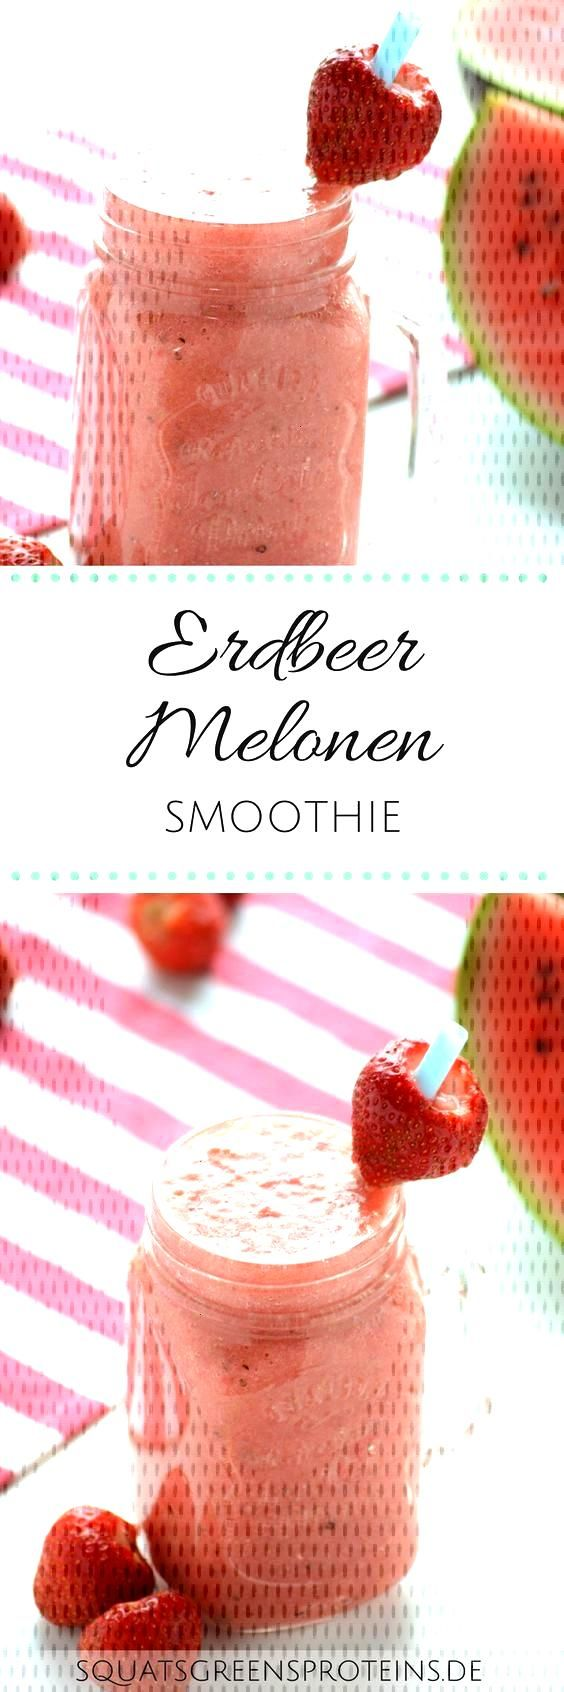 New Free Recipe: Summery Strawberry Melon Smoothie - Squats, Greens & Proteins by Melanie  Popular